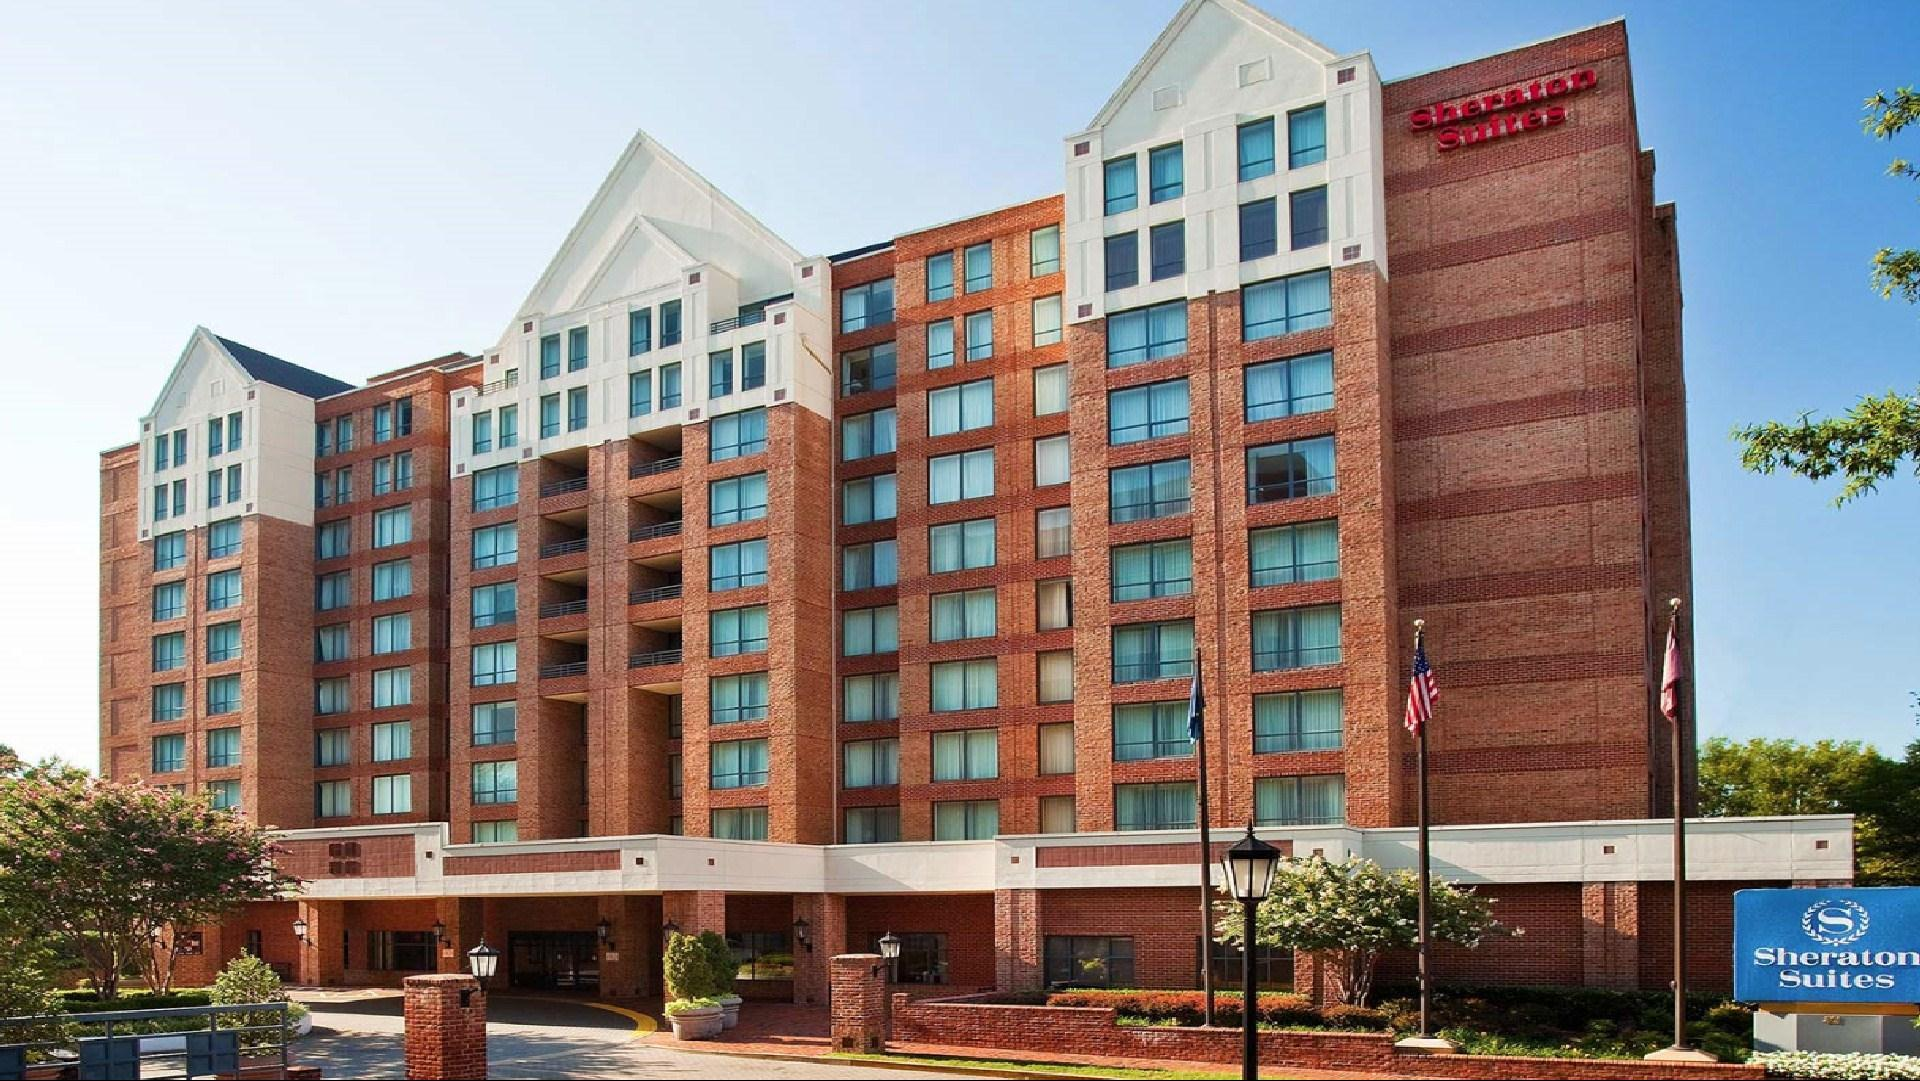 Meetings & Events at Sheraton Suites Old Town Alexandria